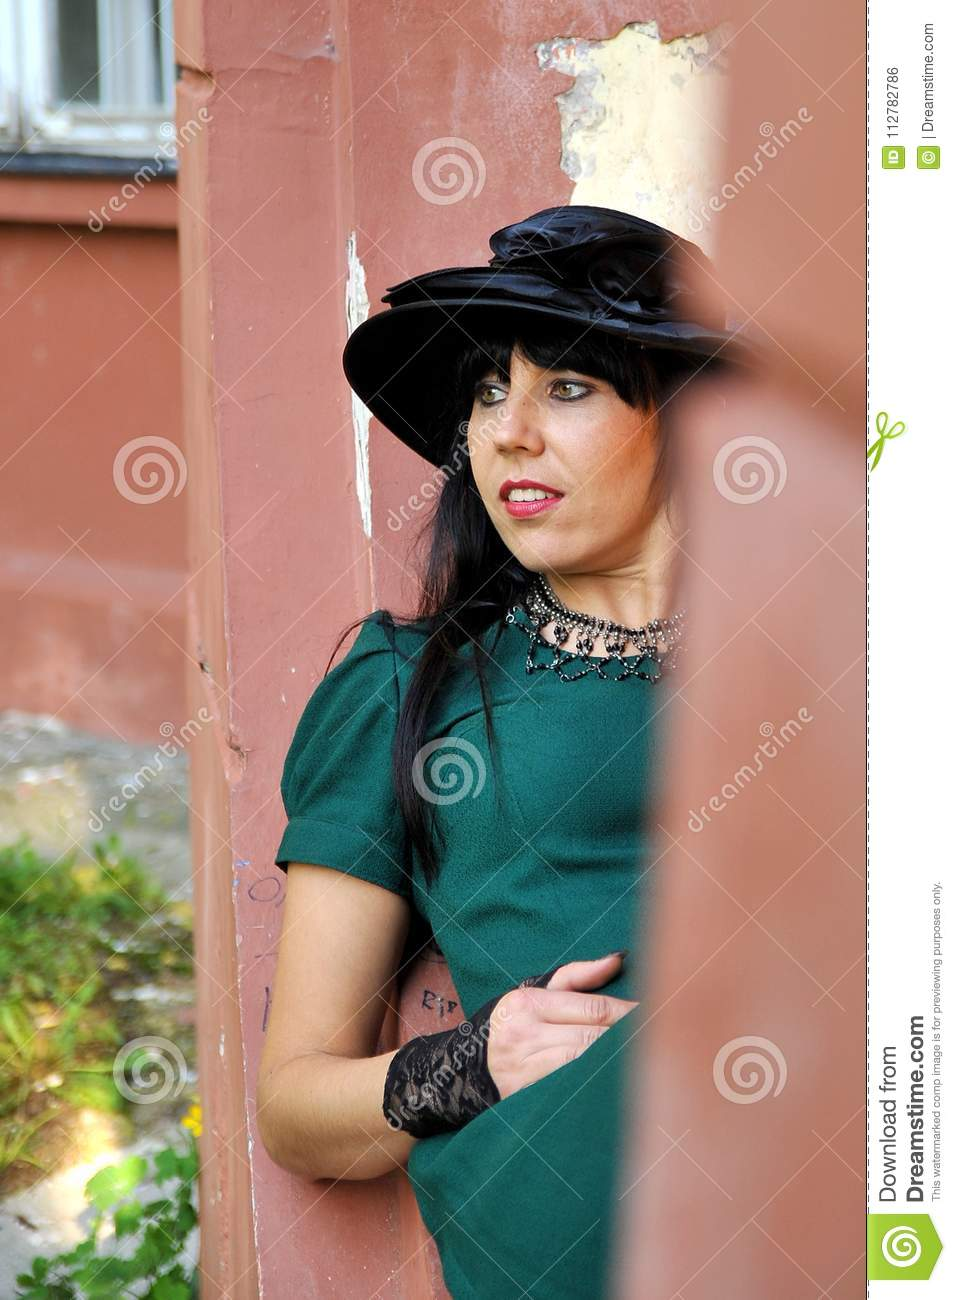 69089aed784 Black Hair Women On Green Dress With Black Hat Stock Photo - Image ...